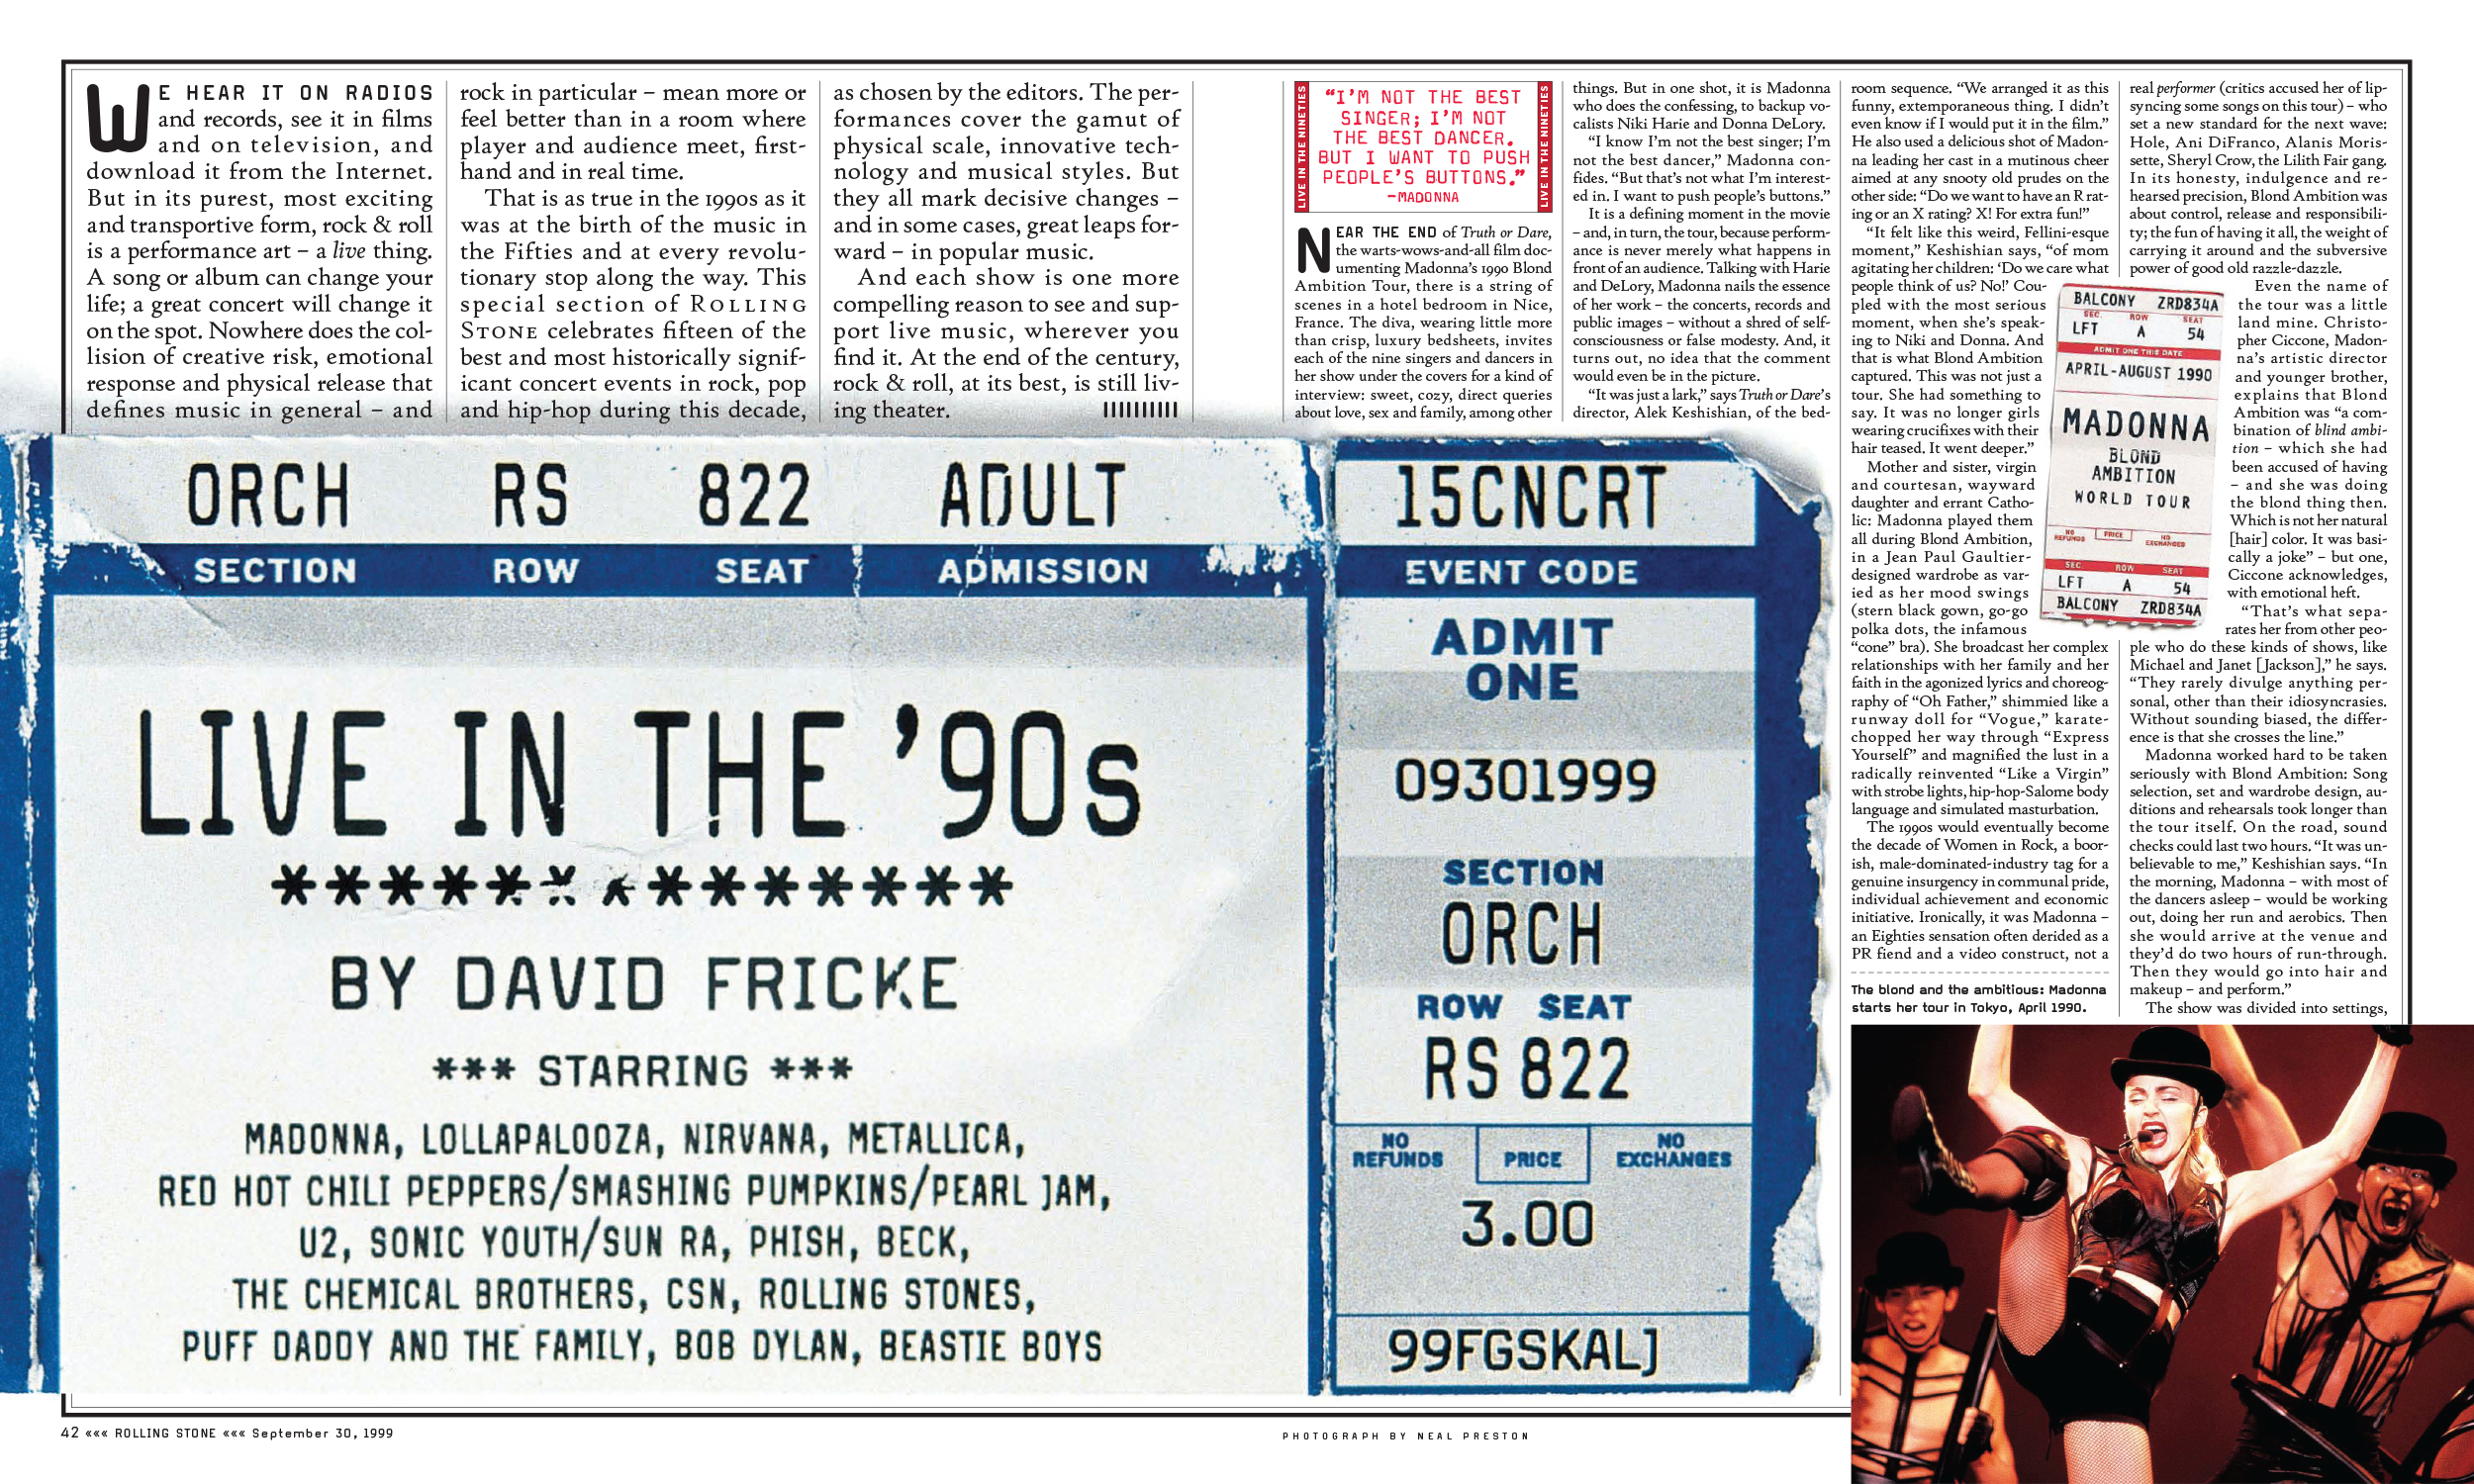 01_01_13 Live in the 90s_LARGE.png